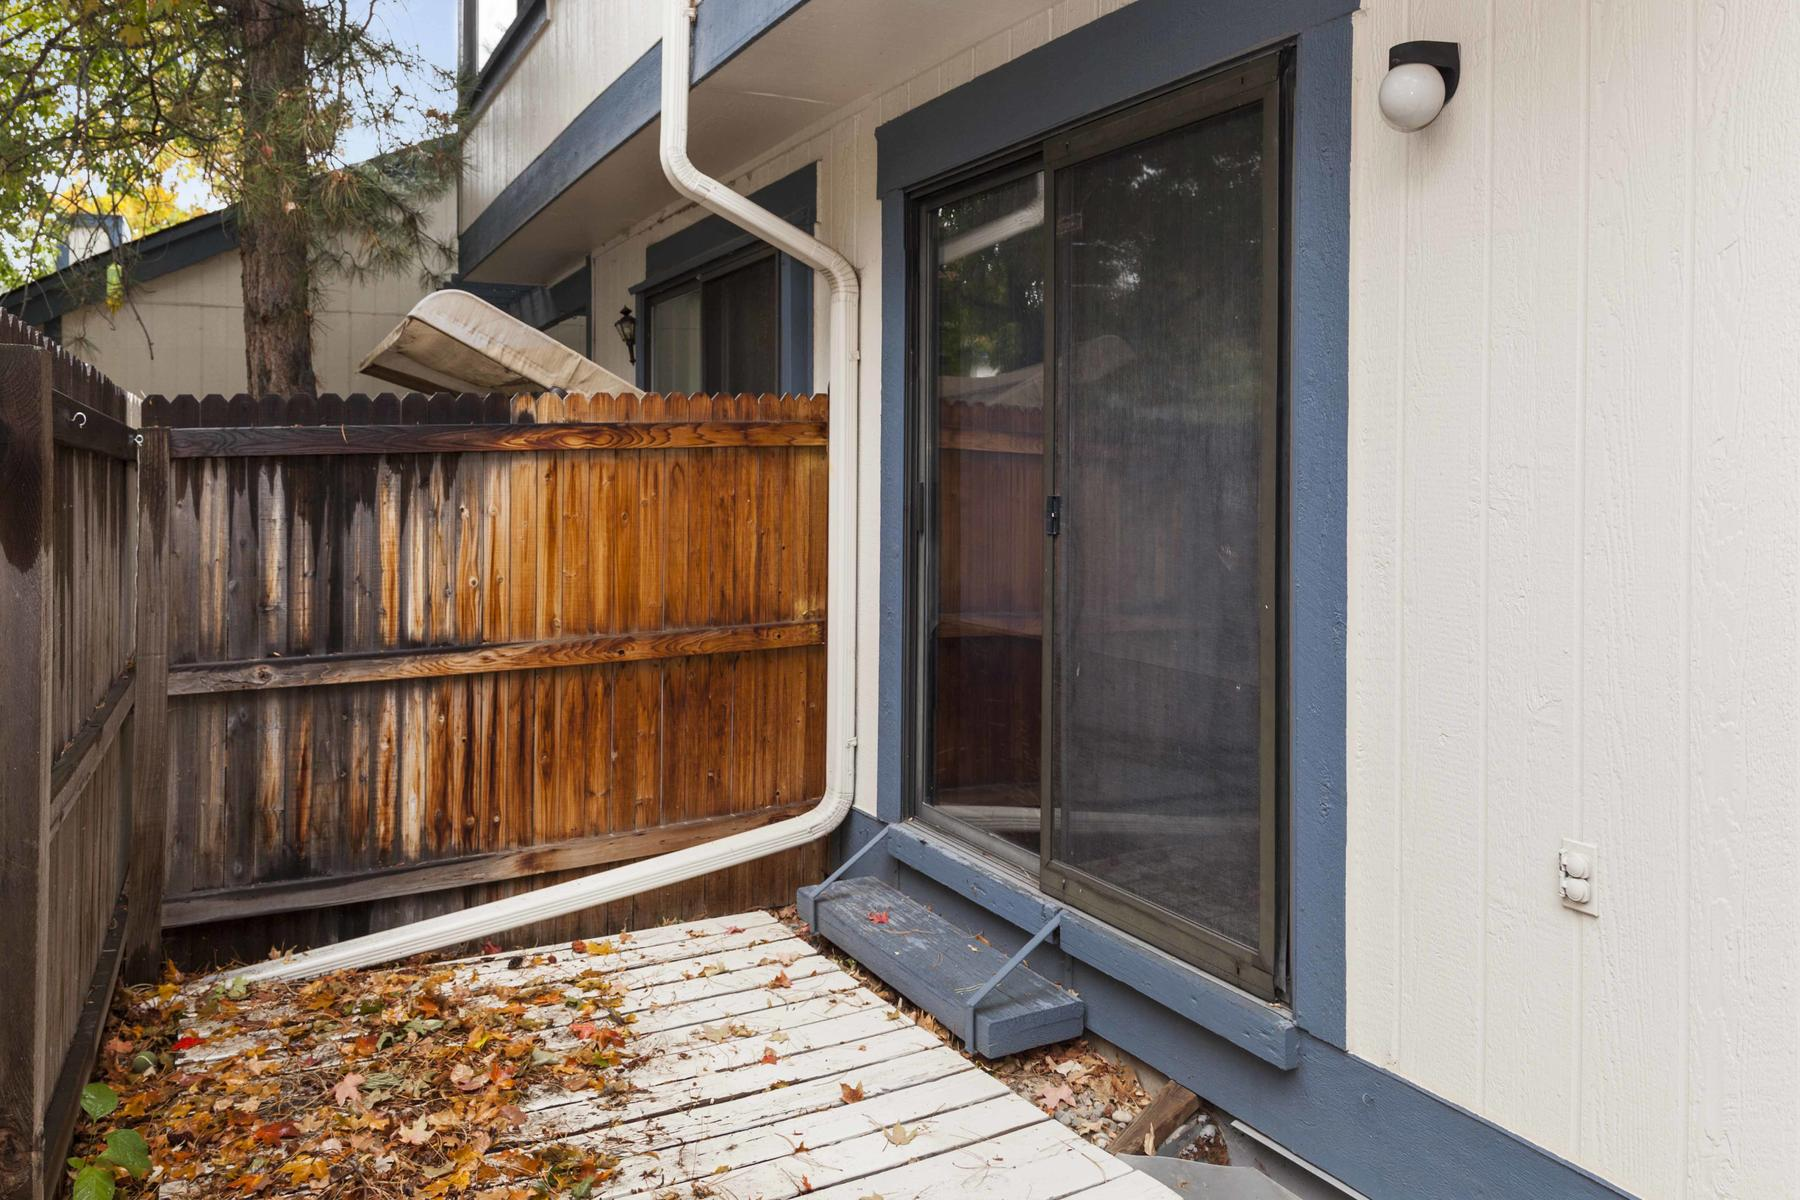 Additional photo for property listing at Immaculate Townhome! 8889 Yukon St #3B Westminster, Colorado 80021 United States